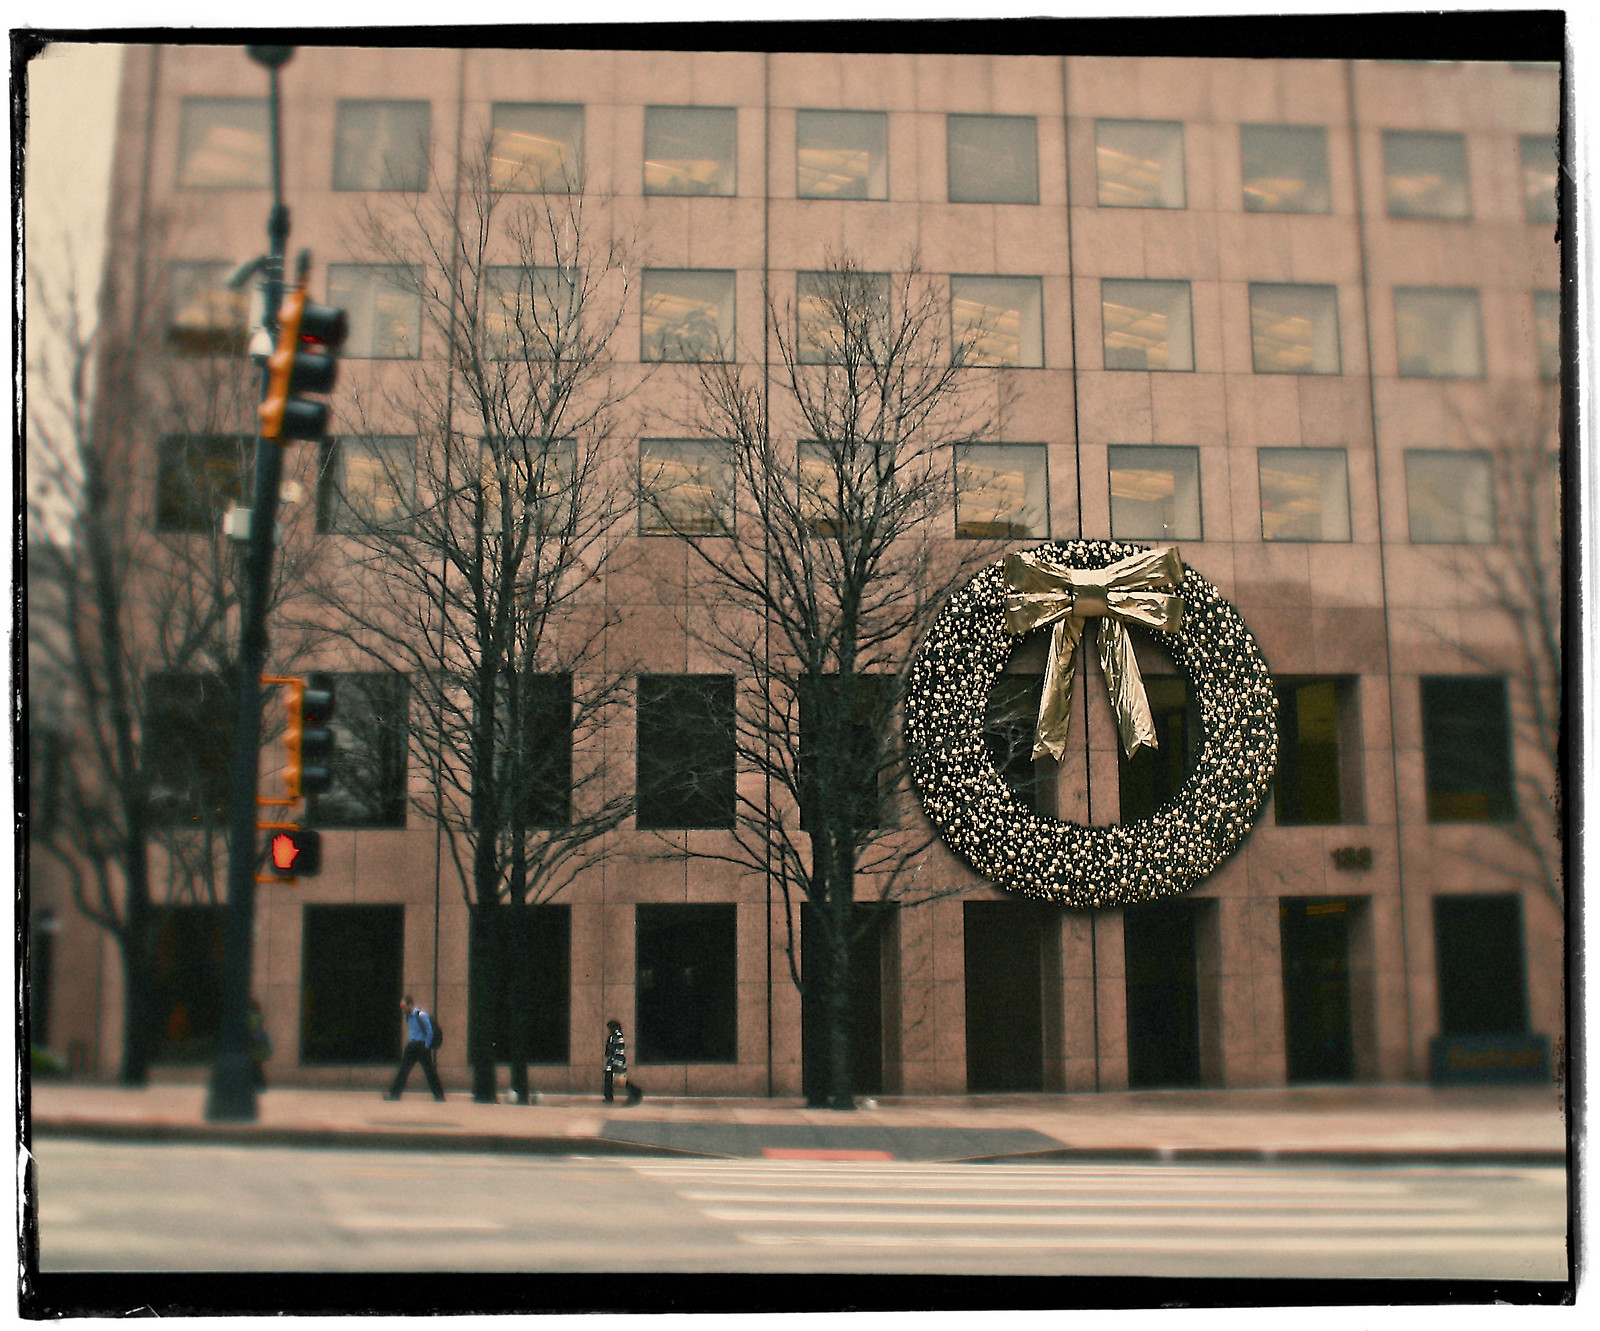 Wreath on the Georgia Pacific Building, Downtown Atlanta, 2012